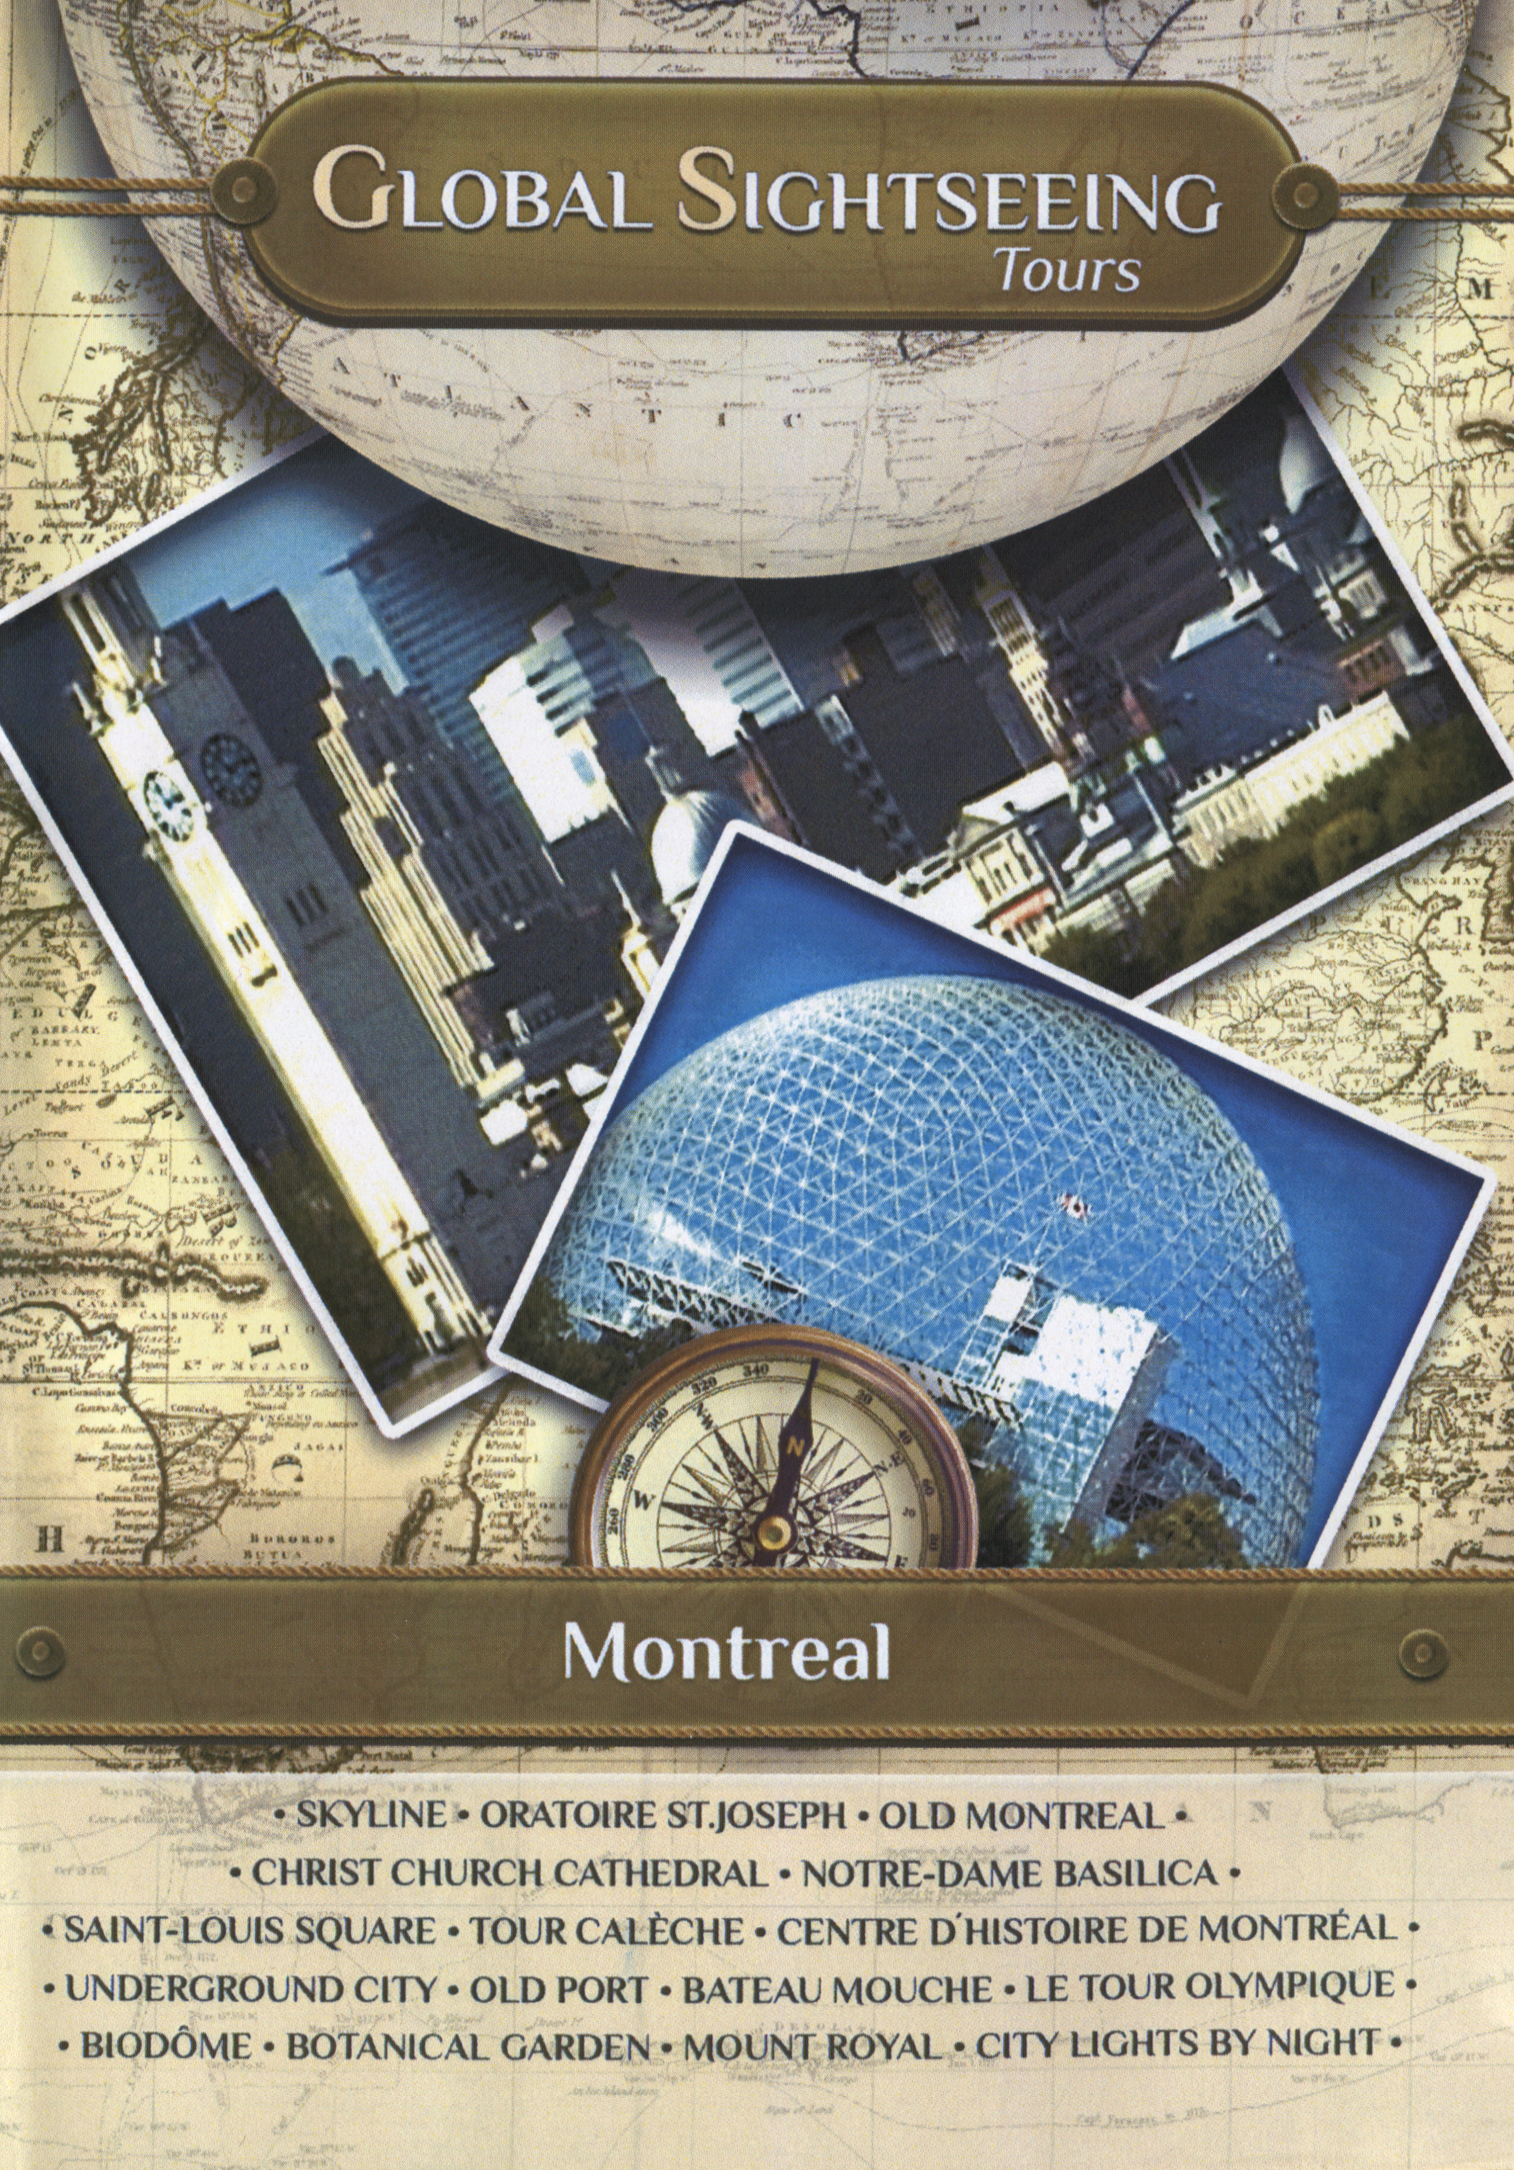 Global Sightseeing Tours: Montreal